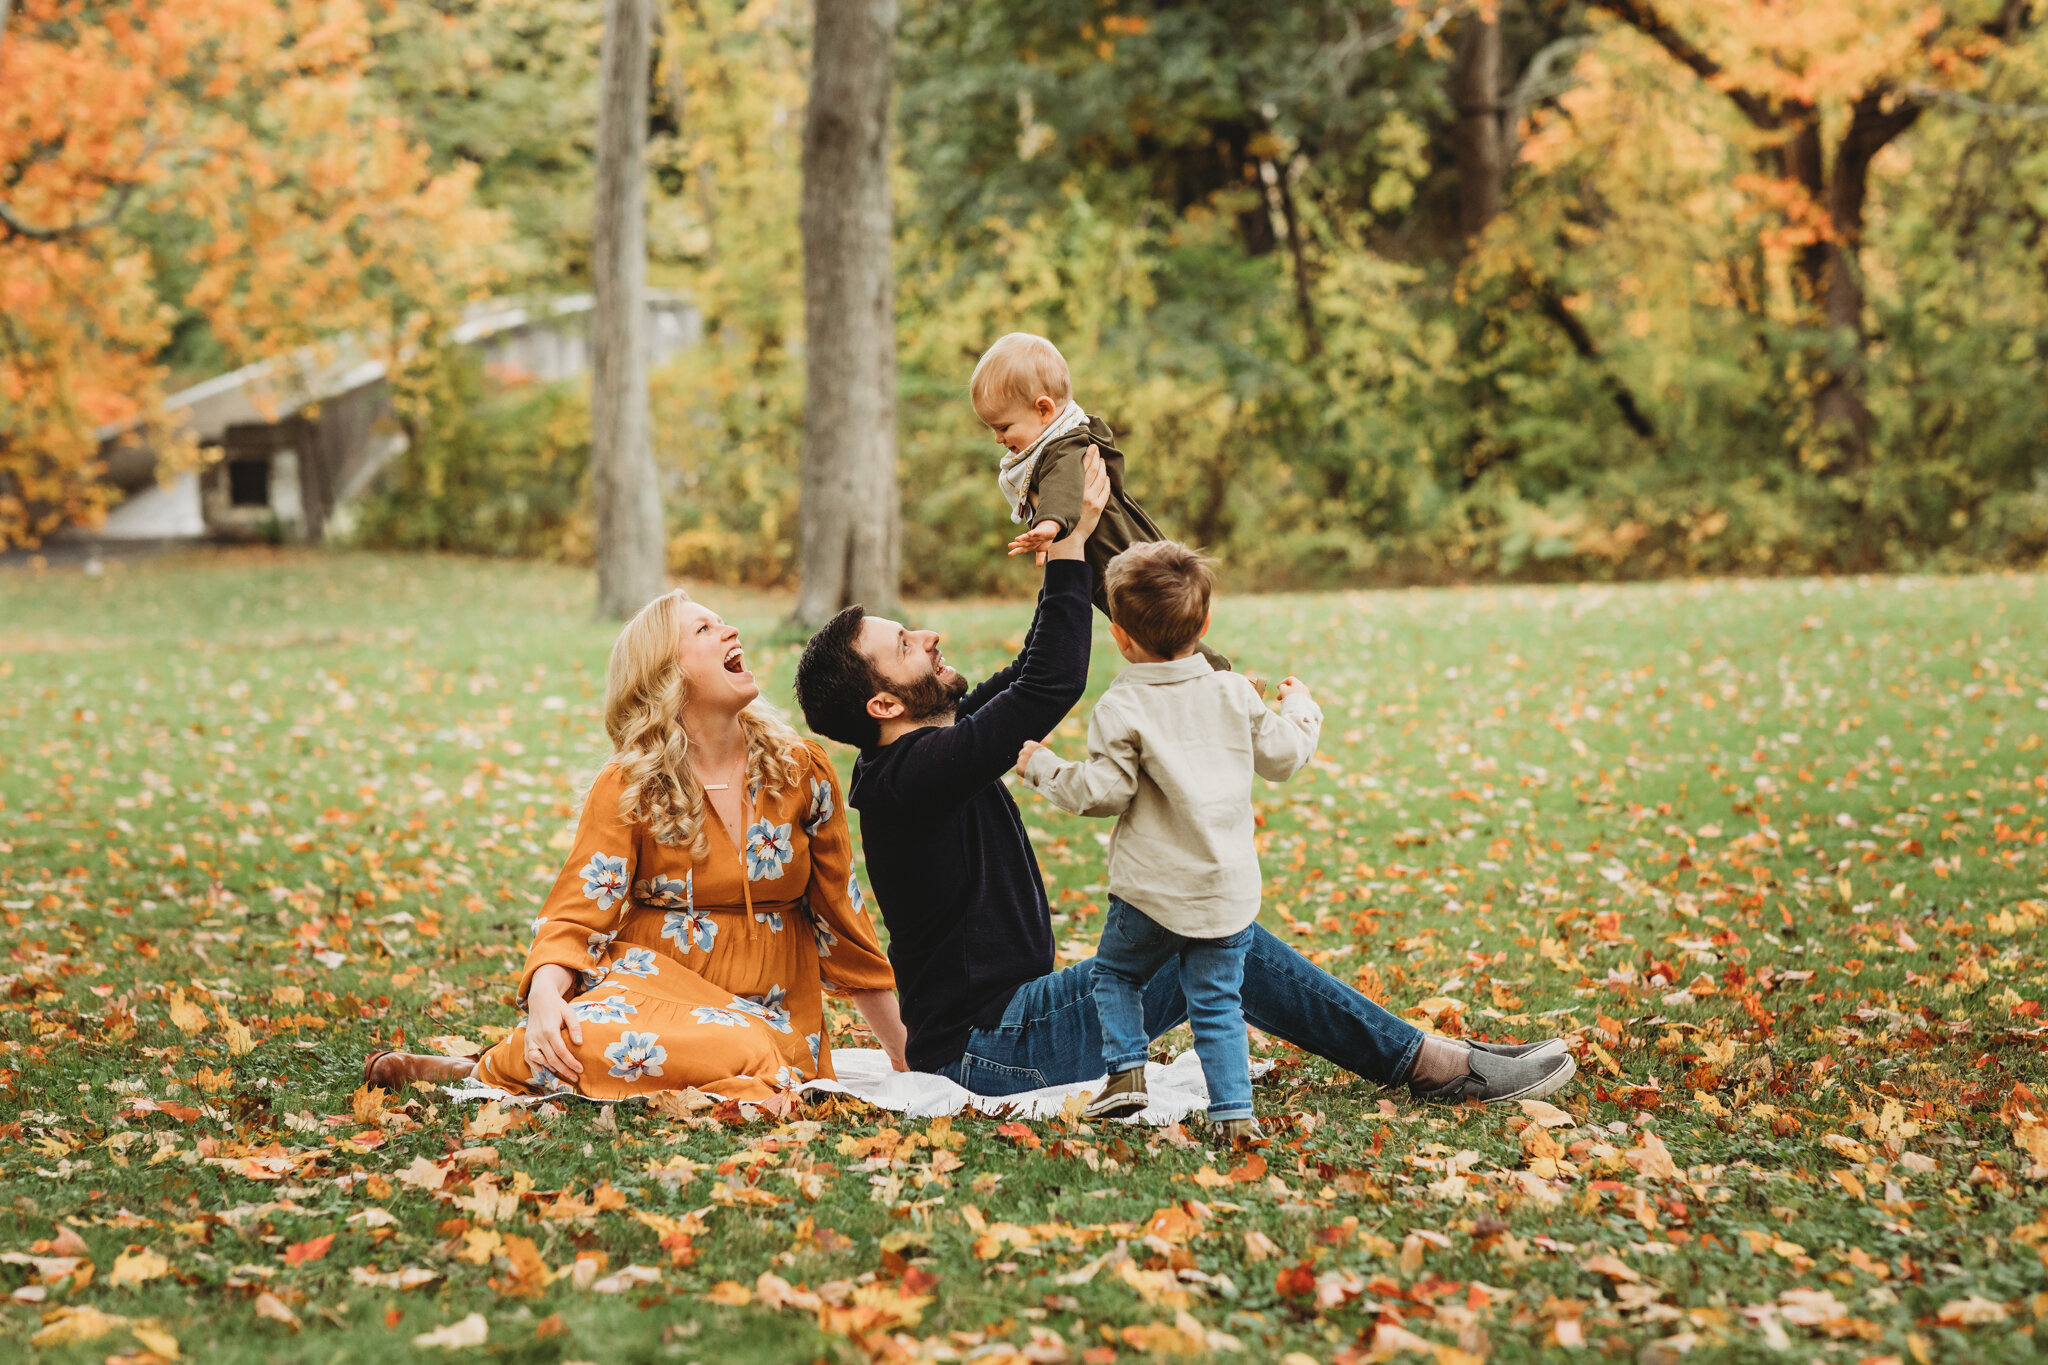 Family of four from Sudbury on a leaf covered lawn with bright foliage behind them during their family photo session. They booked almost a year ahead of time to score this prime foliage spot! Metrowest Boston families: how to score a fall foliage family photography session.